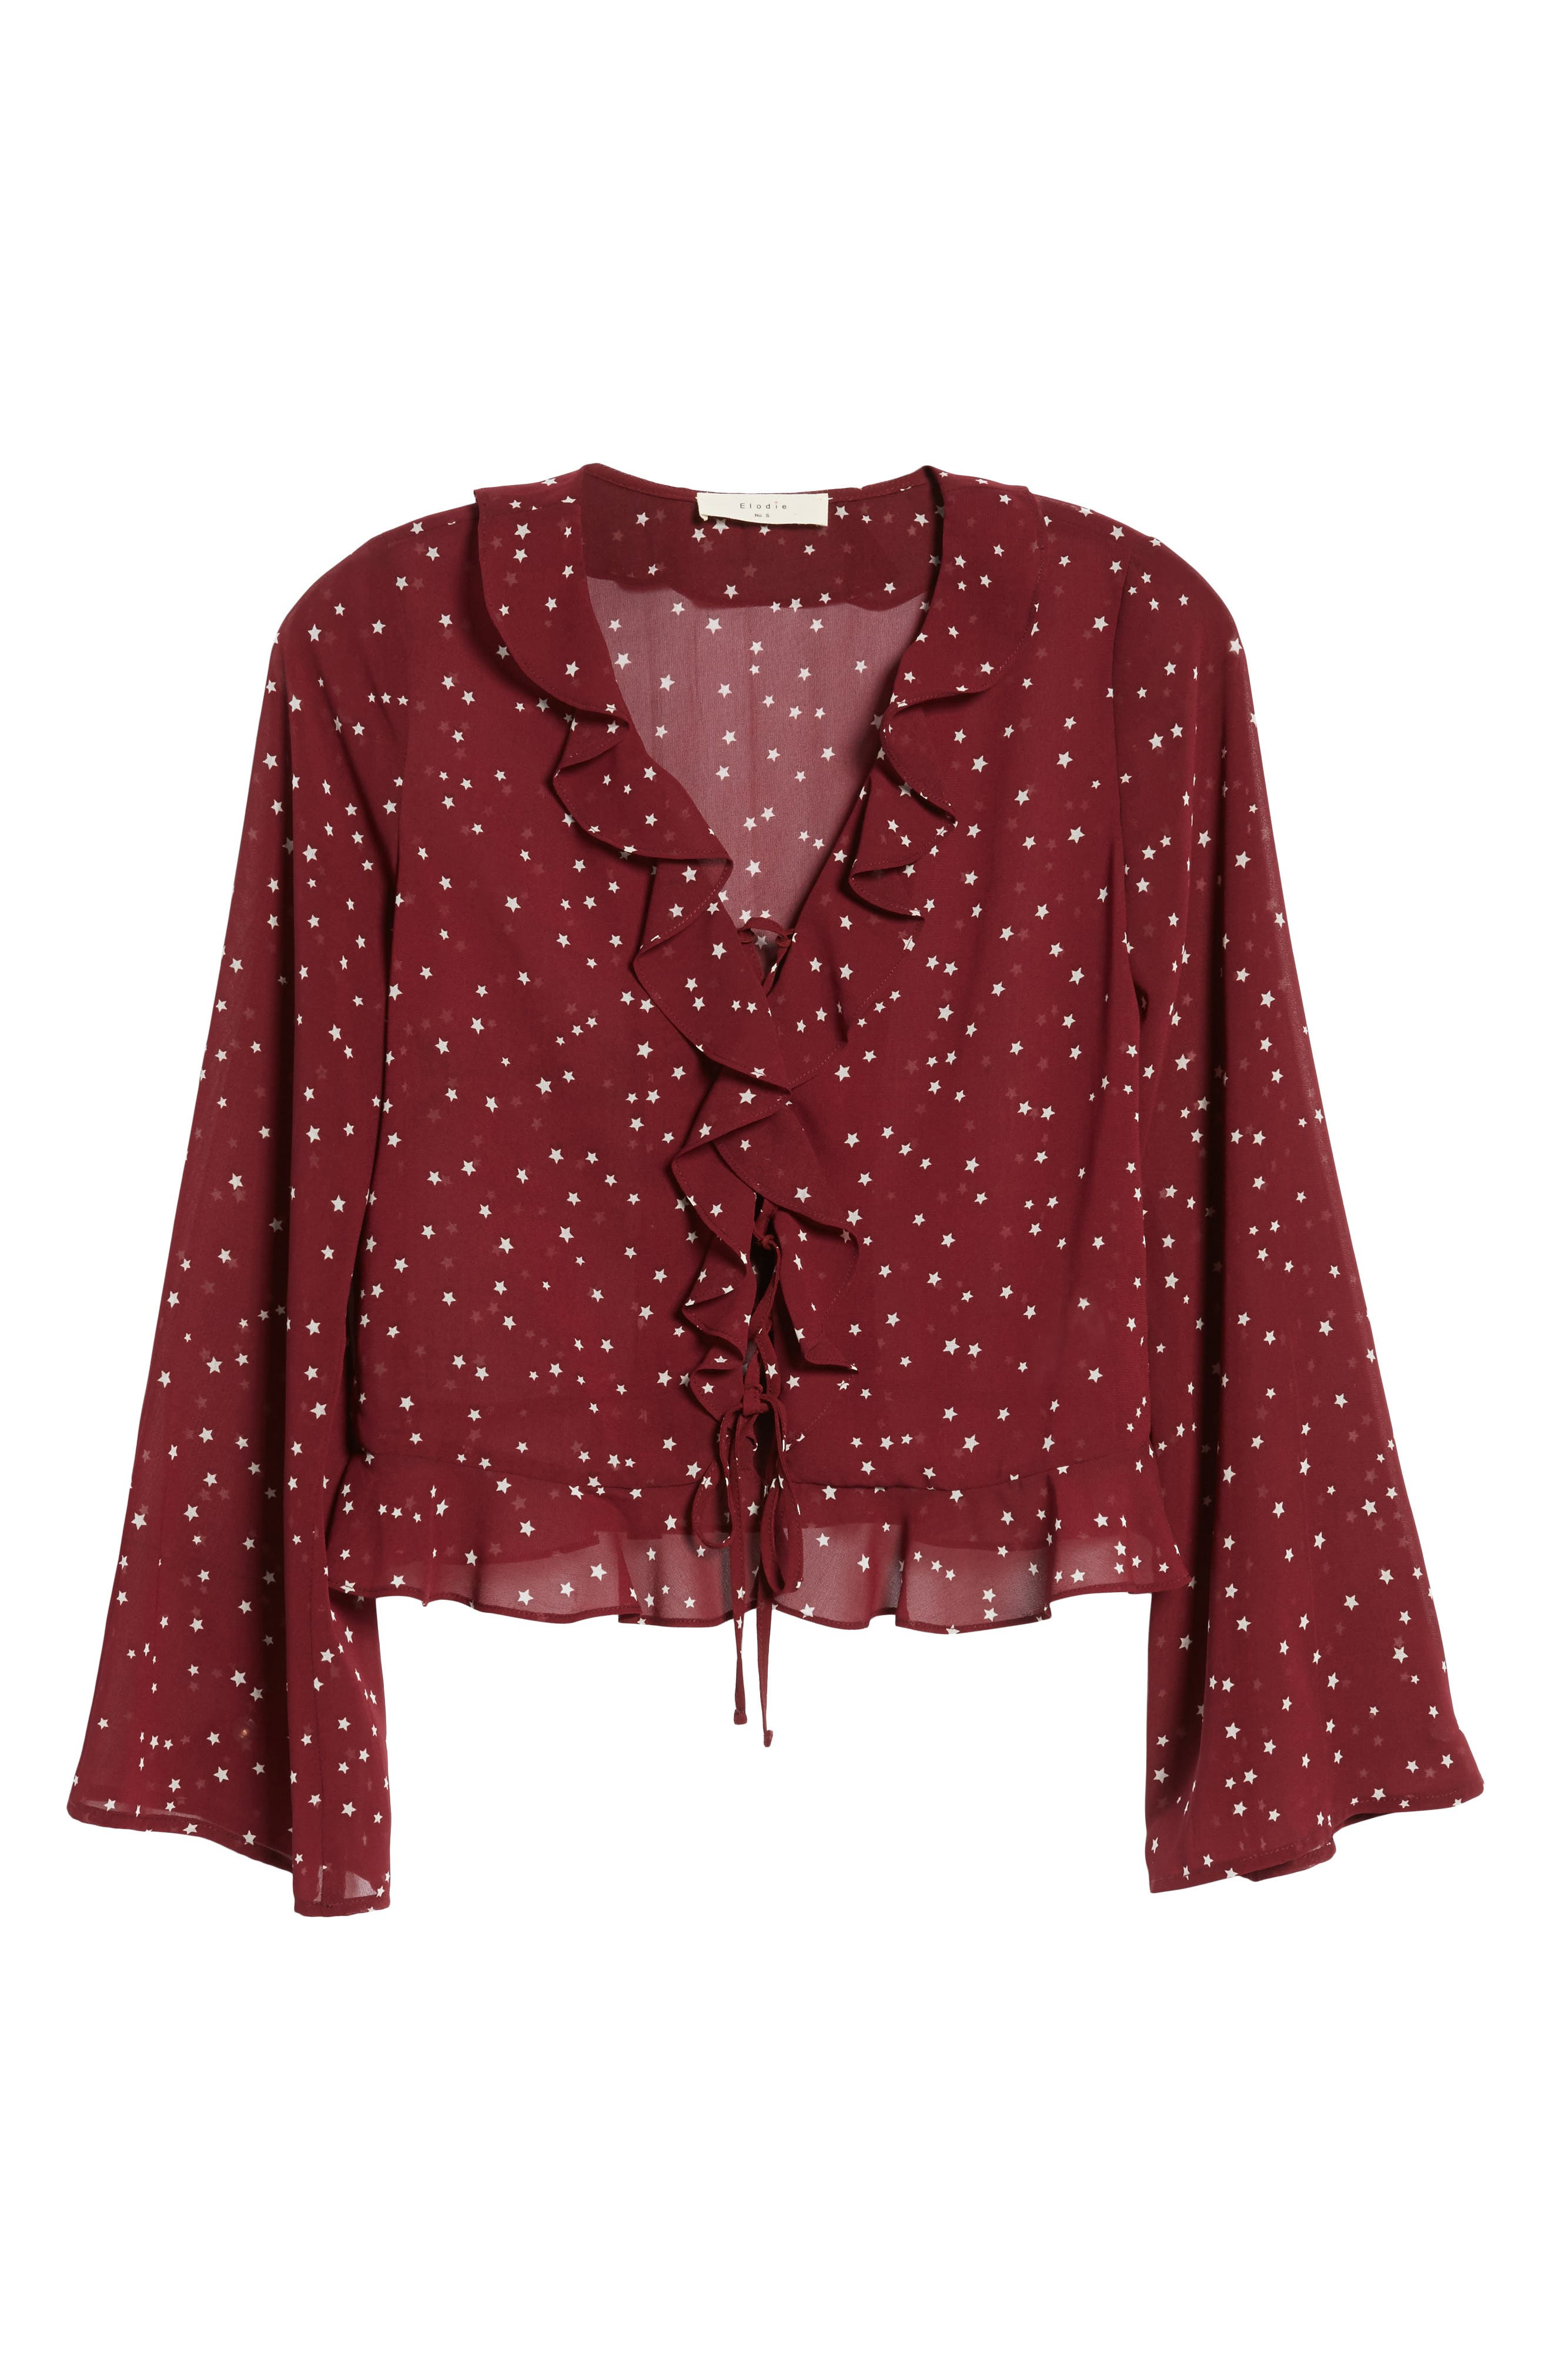 Star Print Ruffle Lace-Up Top,                             Alternate thumbnail 6, color,                             Burgundy Star